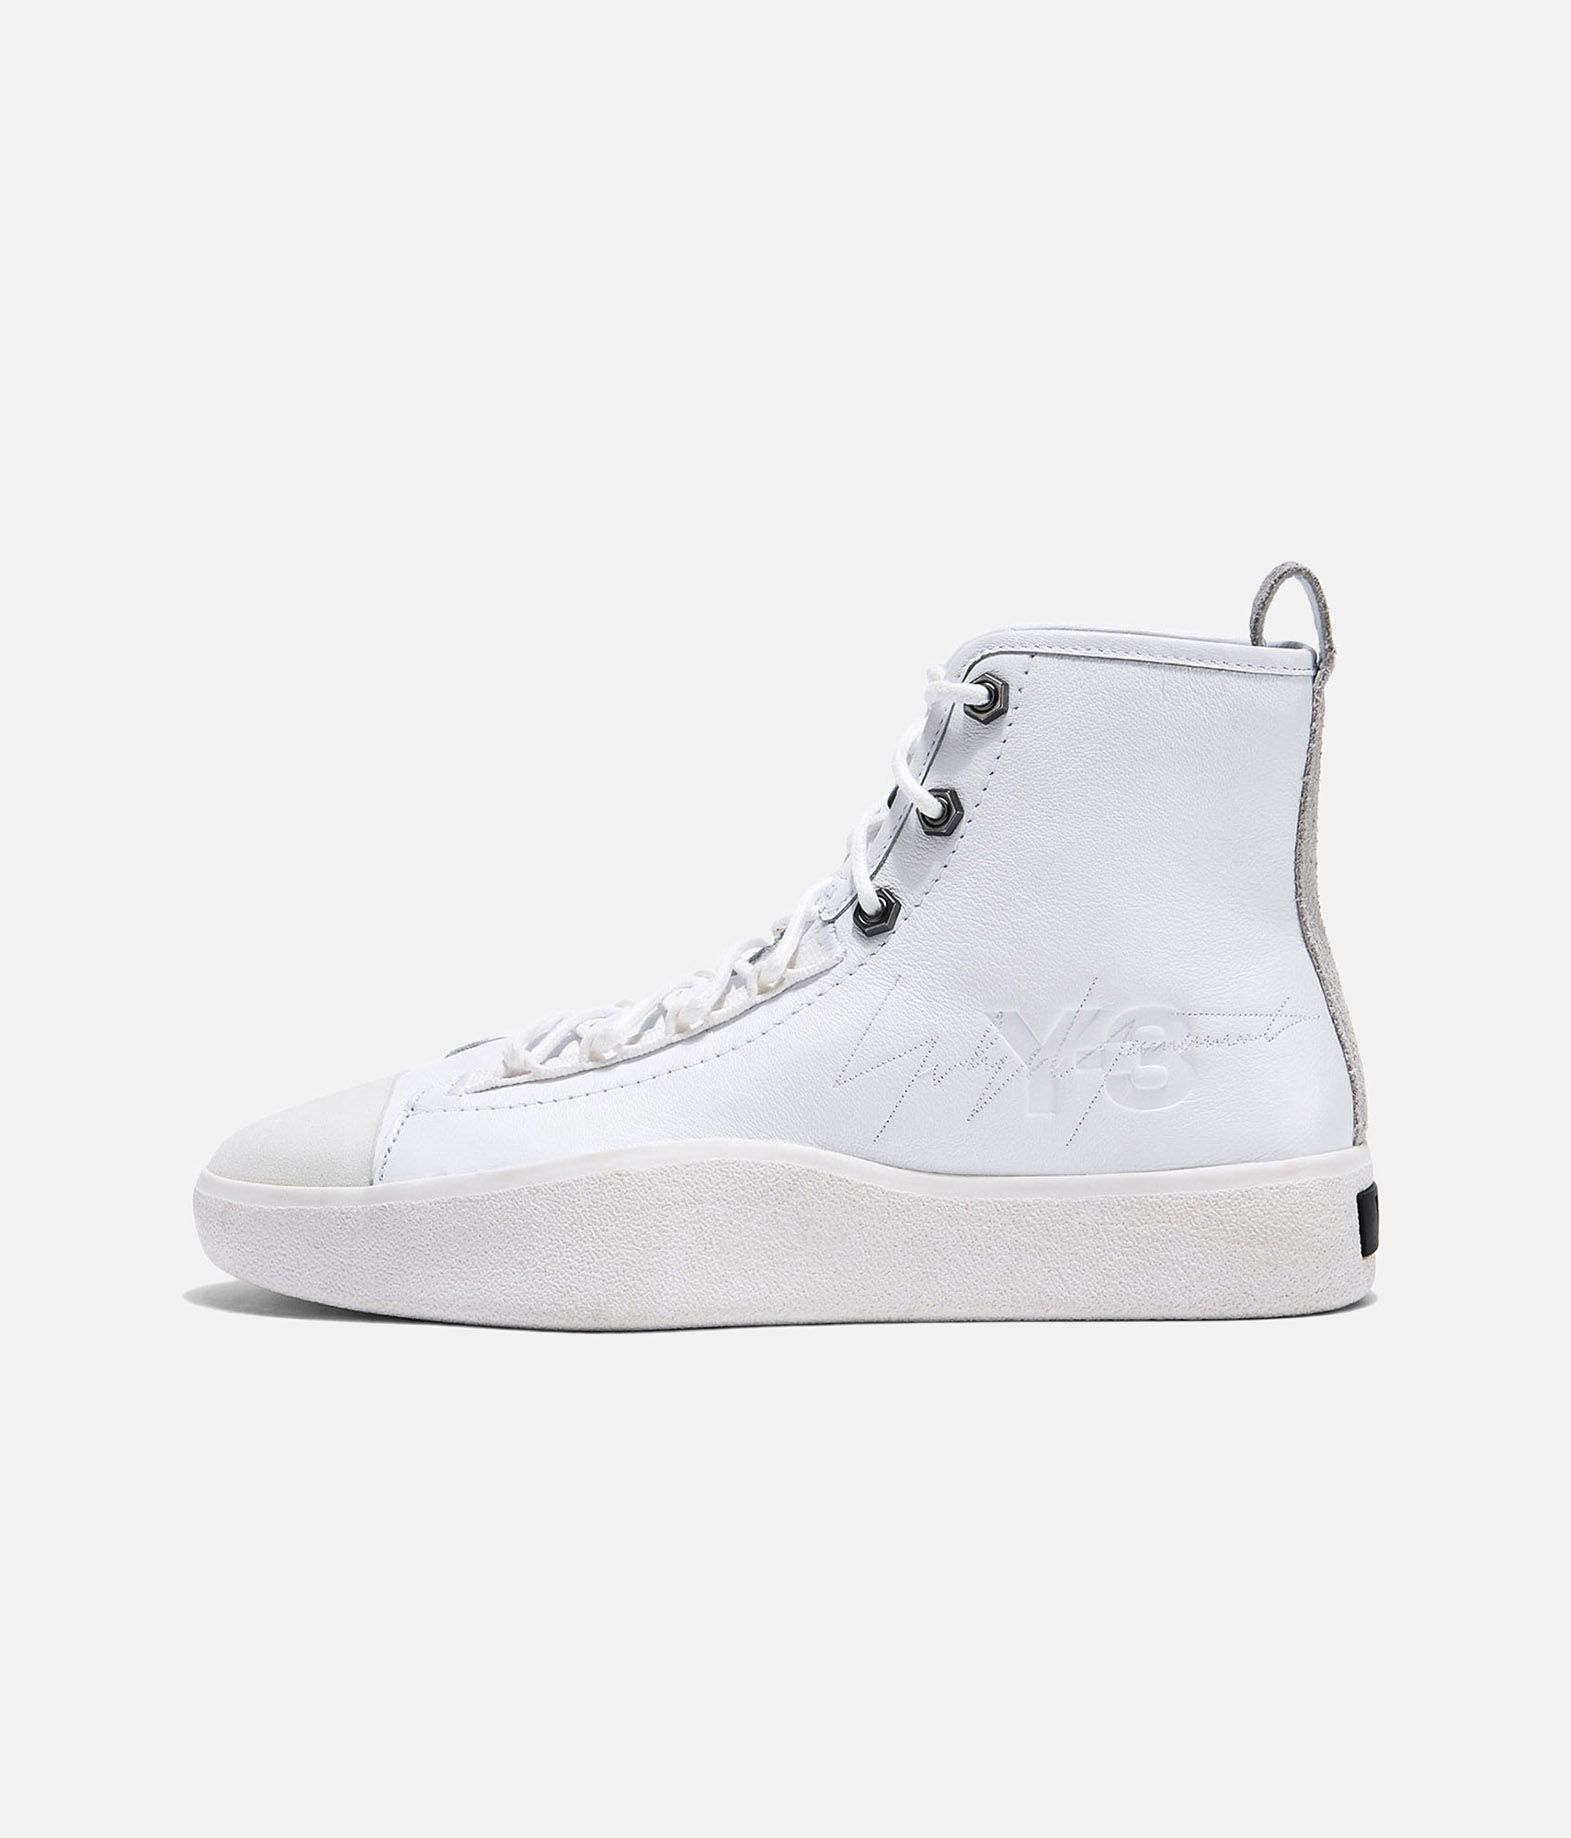 2ac8c1263cddf ... Y-3 Y-3 Bashyo II High-top sneakers E f ...